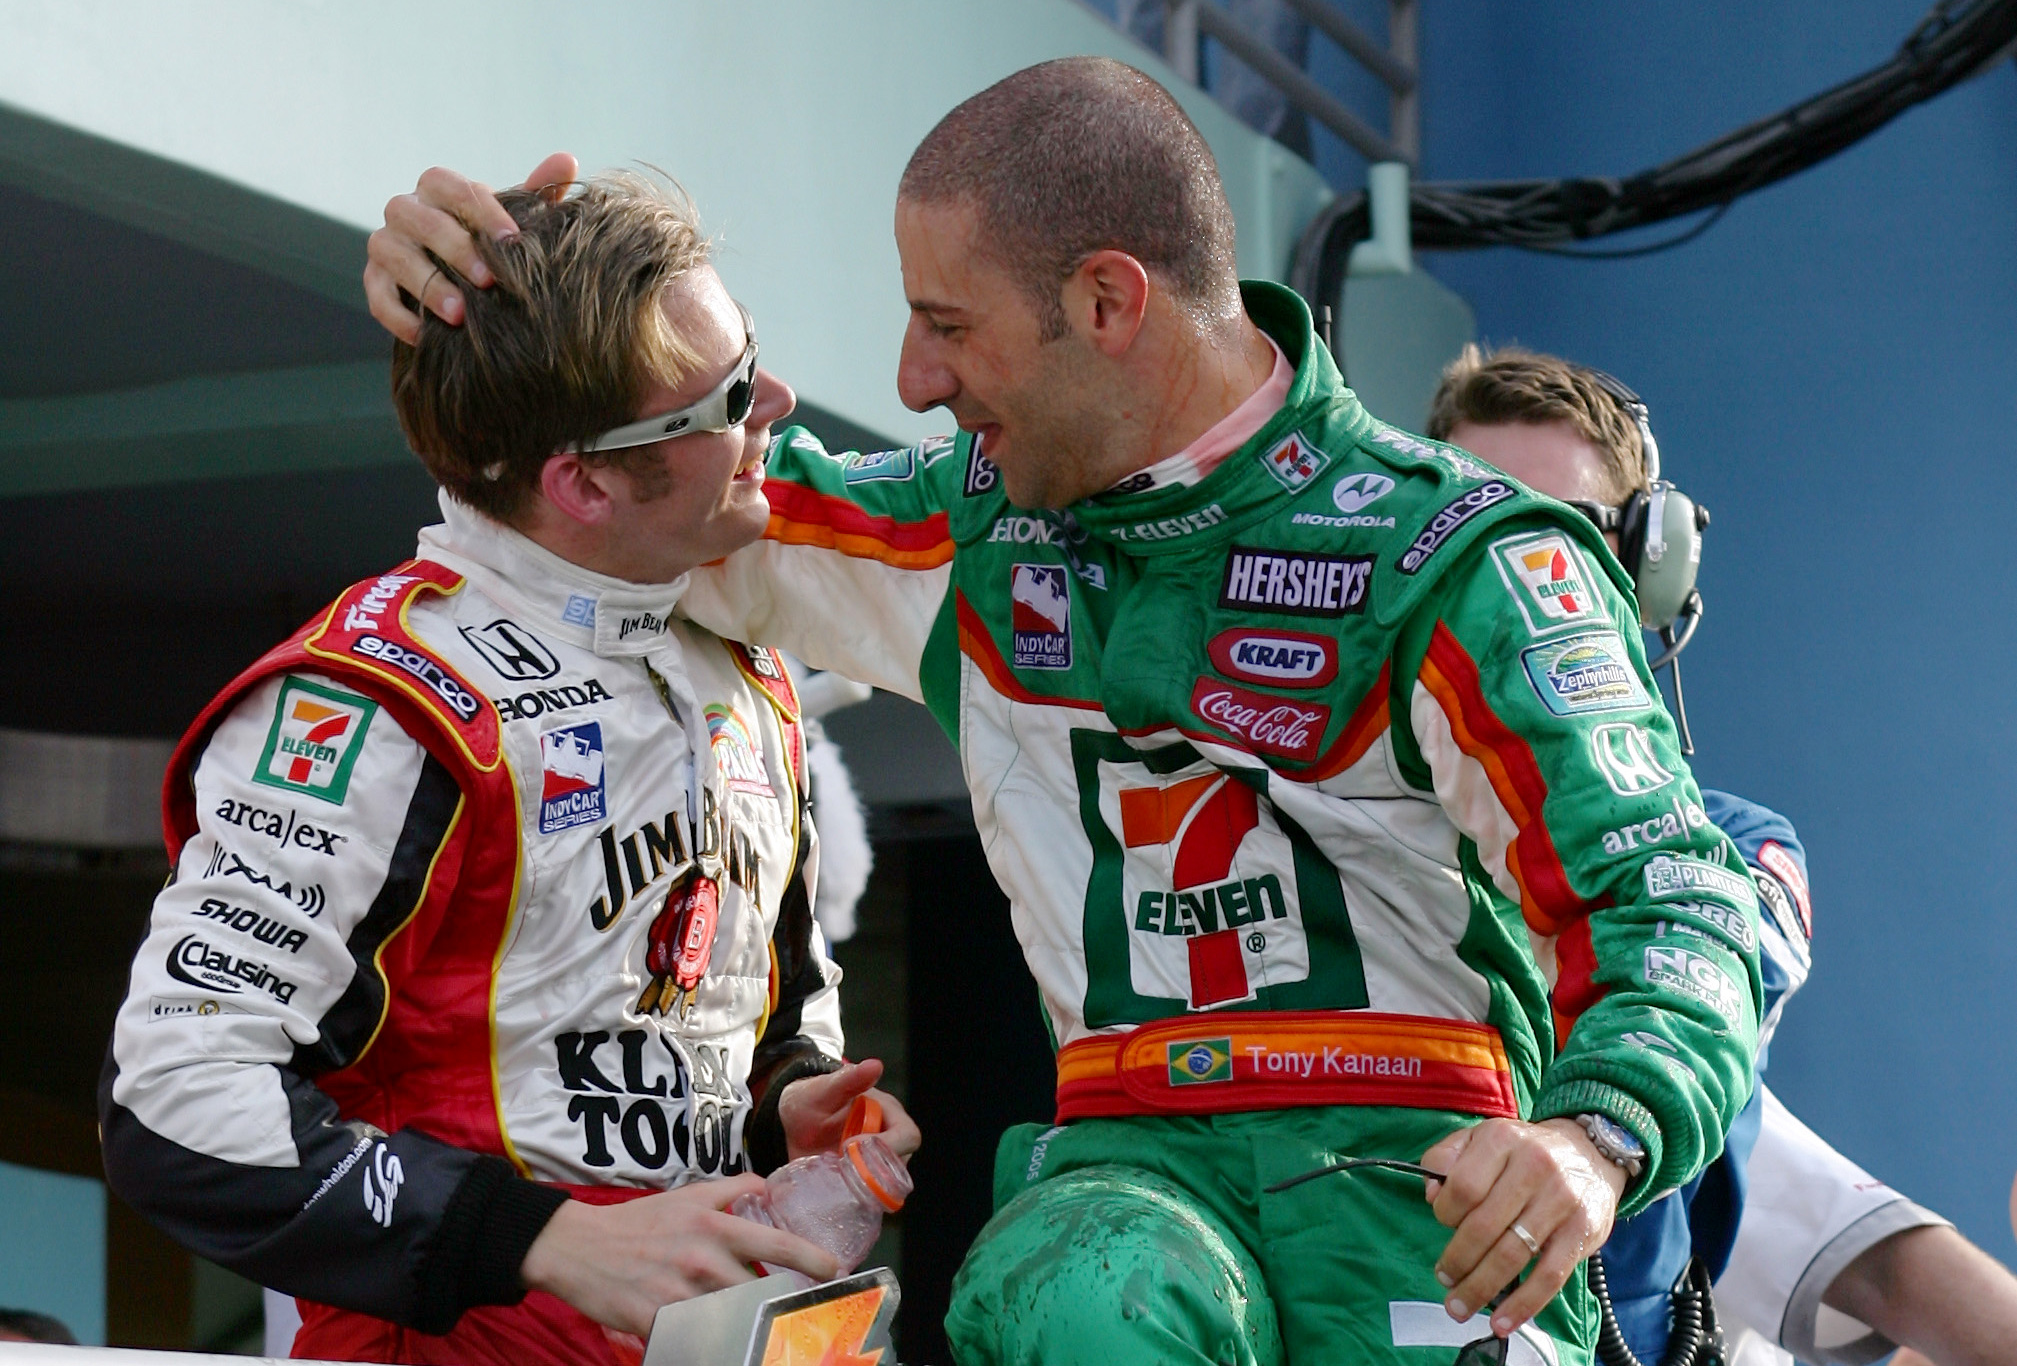 HOMESTEAD, FL - MARCH 6:  Dan Wheldon, driver of the #26 Andretti Green Racing Klein Tools/Jim Beam Honda Dallara, celebrates on the victory podium with teammate Tony Kanaan (R) after winning the IRL IndyCar Series Toyota Indy 300 on March 6, 2005 at the Homestead-Miami Speedway in Homestead, Florida.  (Photo by Robert Laberge/Getty Images)